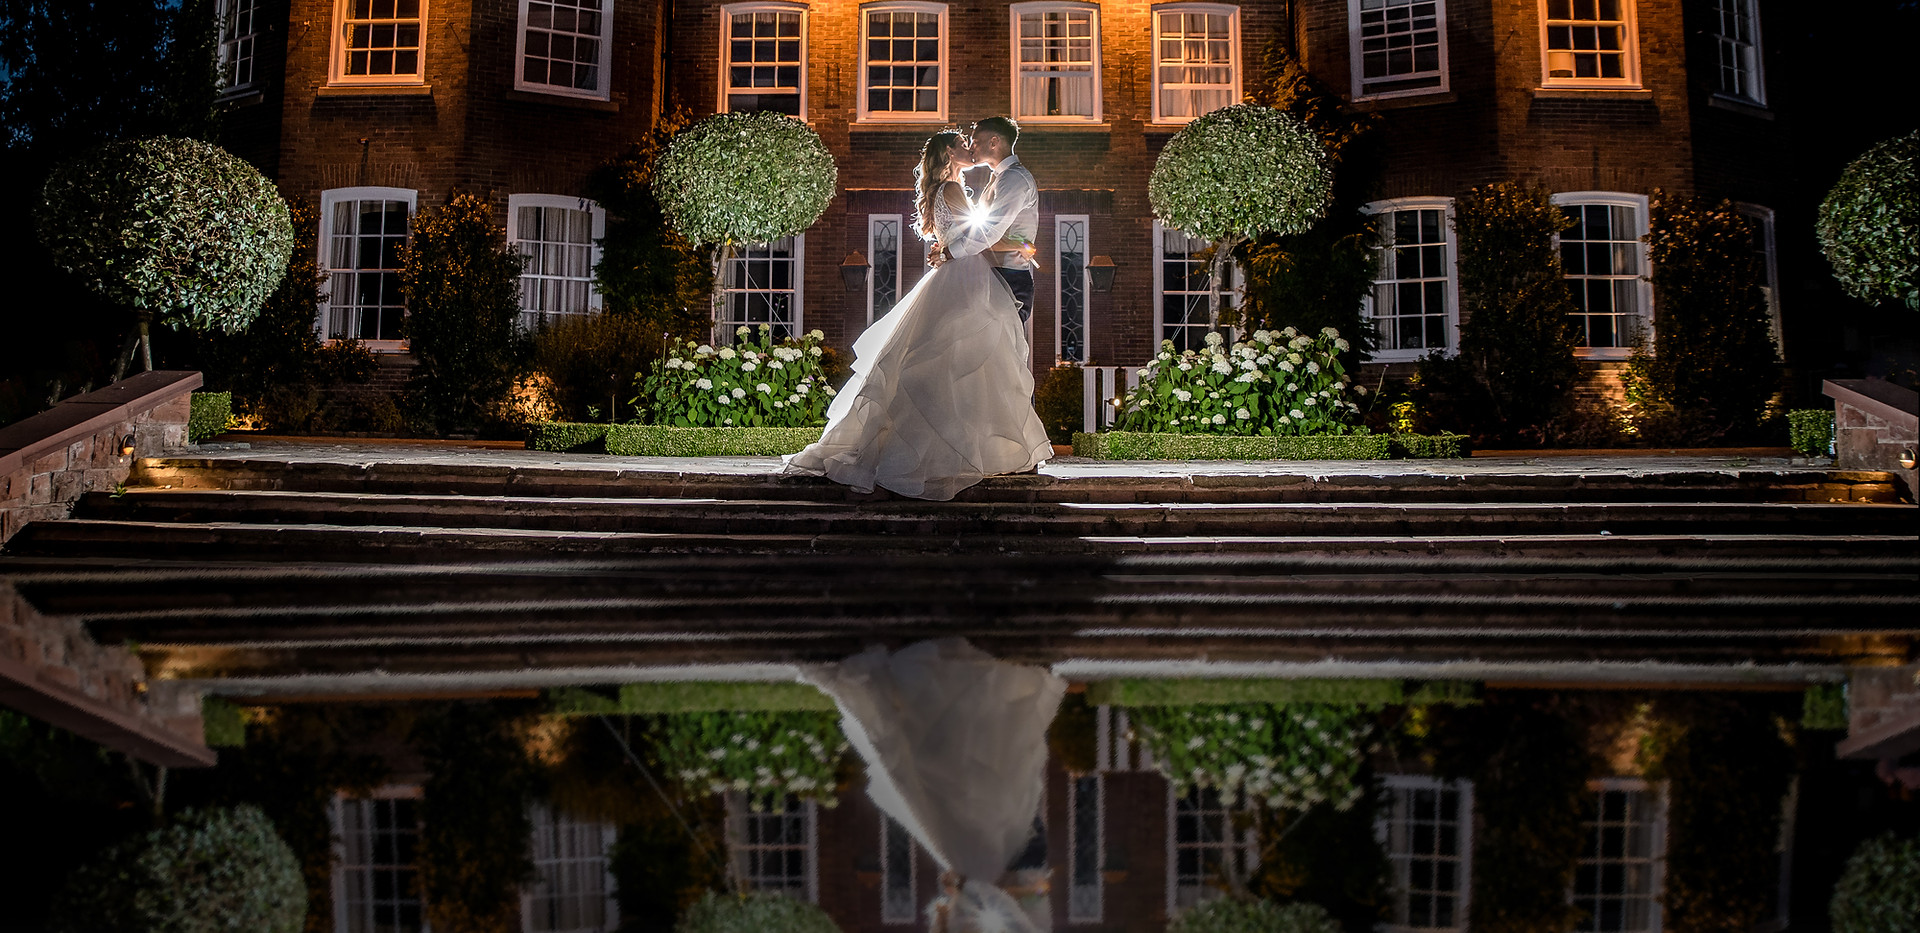 Delamere Manor Wedding Photographer___20